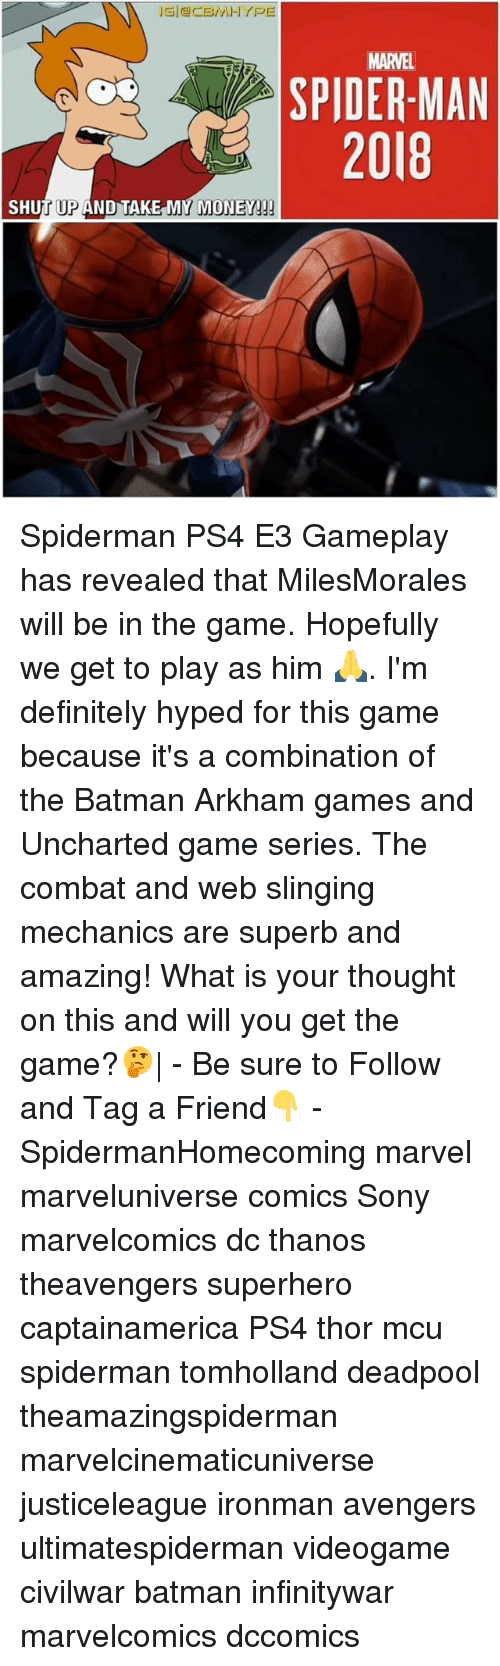 Shut Up And Take: MARVEL  SPIDER-MAN  2018  SHUT UP AND TAKE MY MONEY! Spiderman PS4 E3 Gameplay has revealed that MilesMorales will be in the game. Hopefully we get to play as him 🙏. I'm definitely hyped for this game because it's a combination of the Batman Arkham games and Uncharted game series. The combat and web slinging mechanics are superb and amazing! What is your thought on this and will you get the game?🤔| - Be sure to Follow and Tag a Friend👇 - SpidermanHomecoming marvel marveluniverse comics Sony marvelcomics dc thanos theavengers superhero captainamerica PS4 thor mcu spiderman tomholland deadpool theamazingspiderman marvelcinematicuniverse justiceleague ironman avengers ultimatespiderman videogame civilwar batman infinitywar marvelcomics dccomics